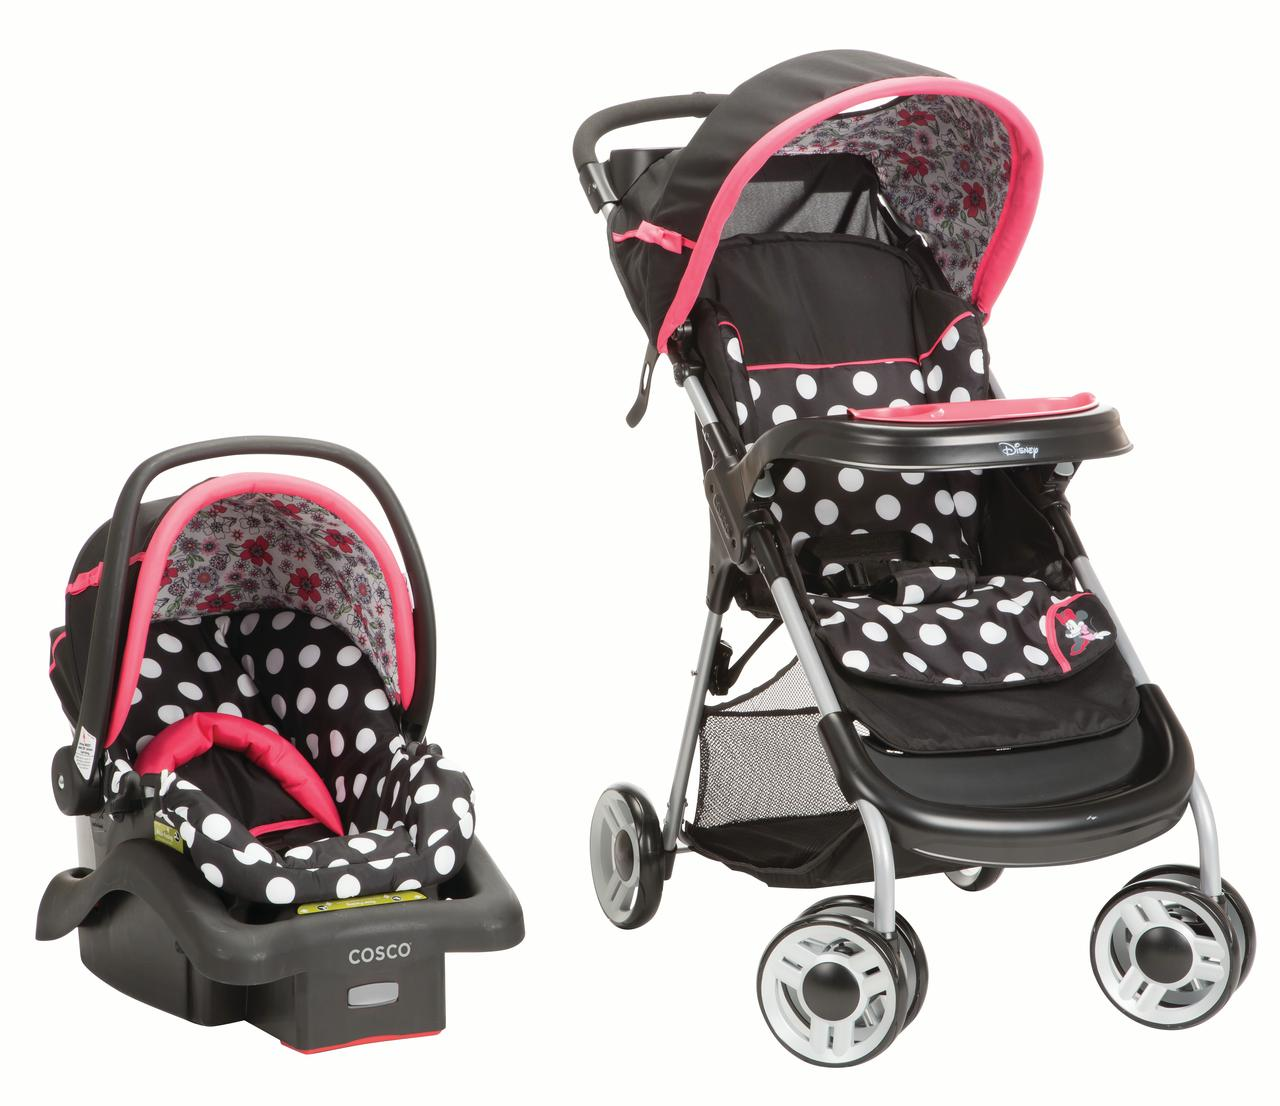 Disney Baby Minnie Mouse Lift & Stroll Plus Travel System (Minnie Coral Flowers)